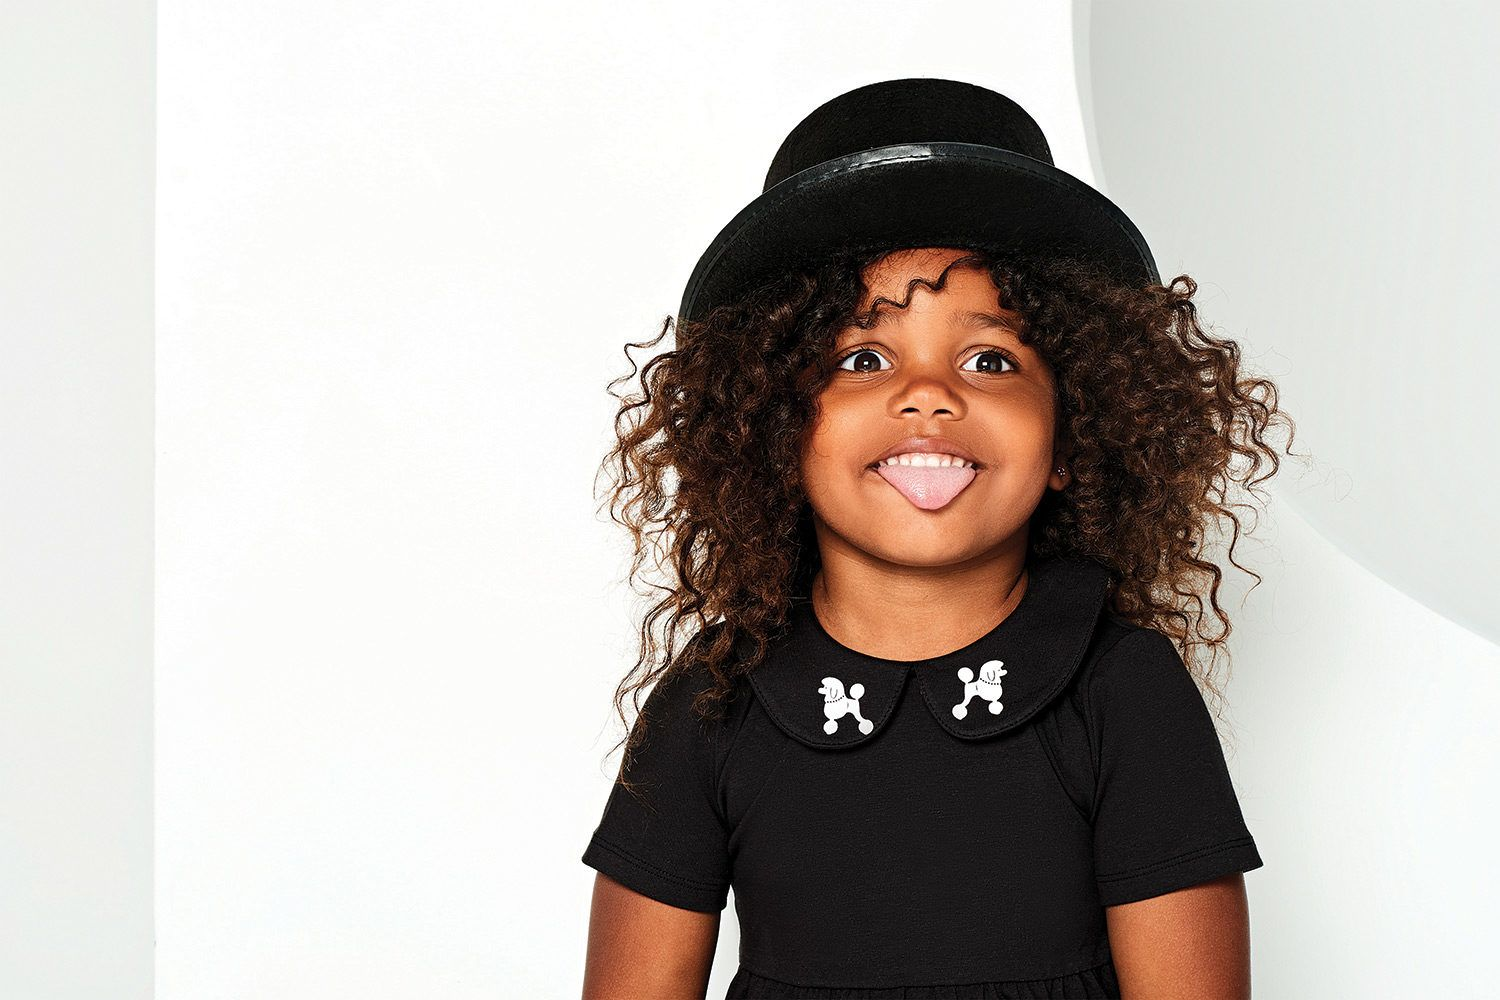 Kid Style: FroBabies & Timbs